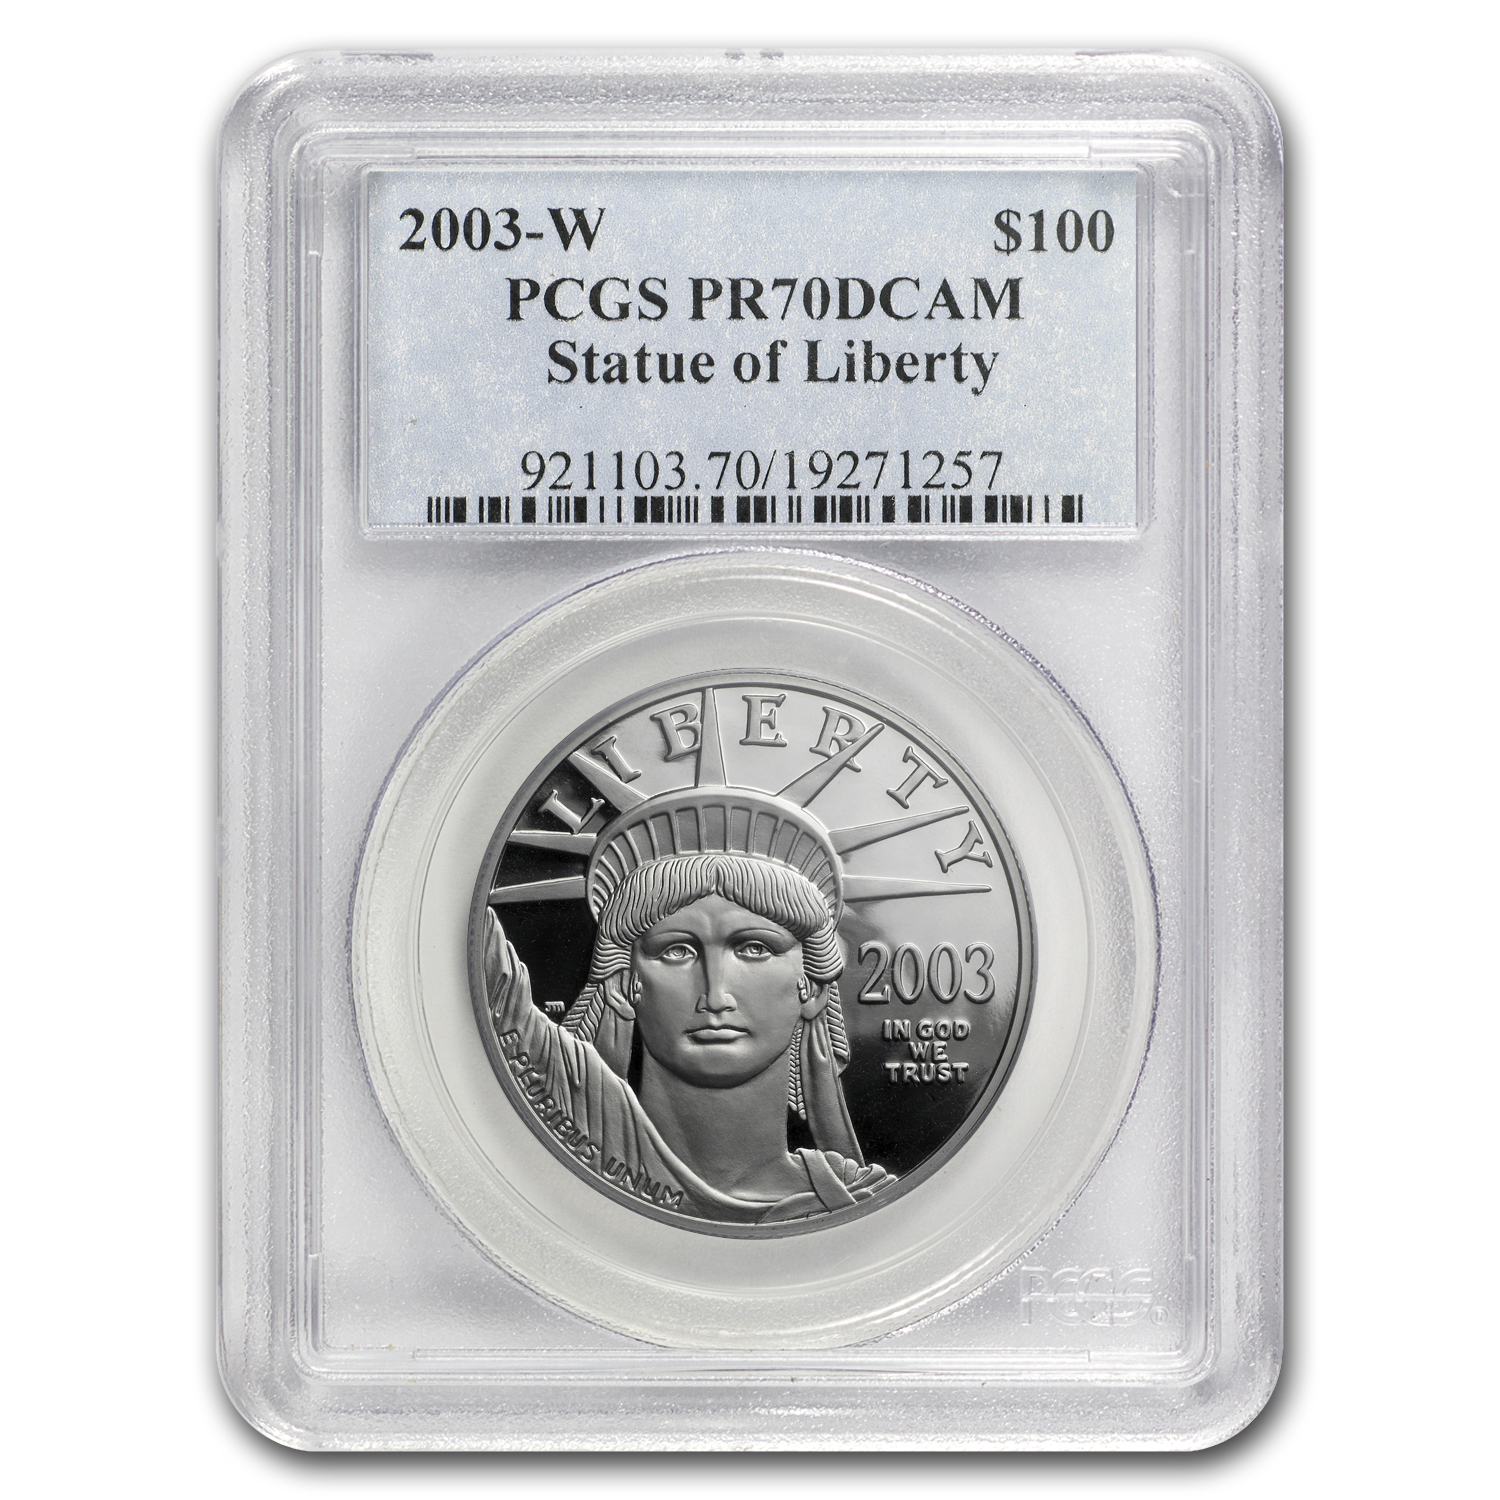 2003-W 1 oz Proof Platinum American Eagle PR-70 PCGS Registry Set